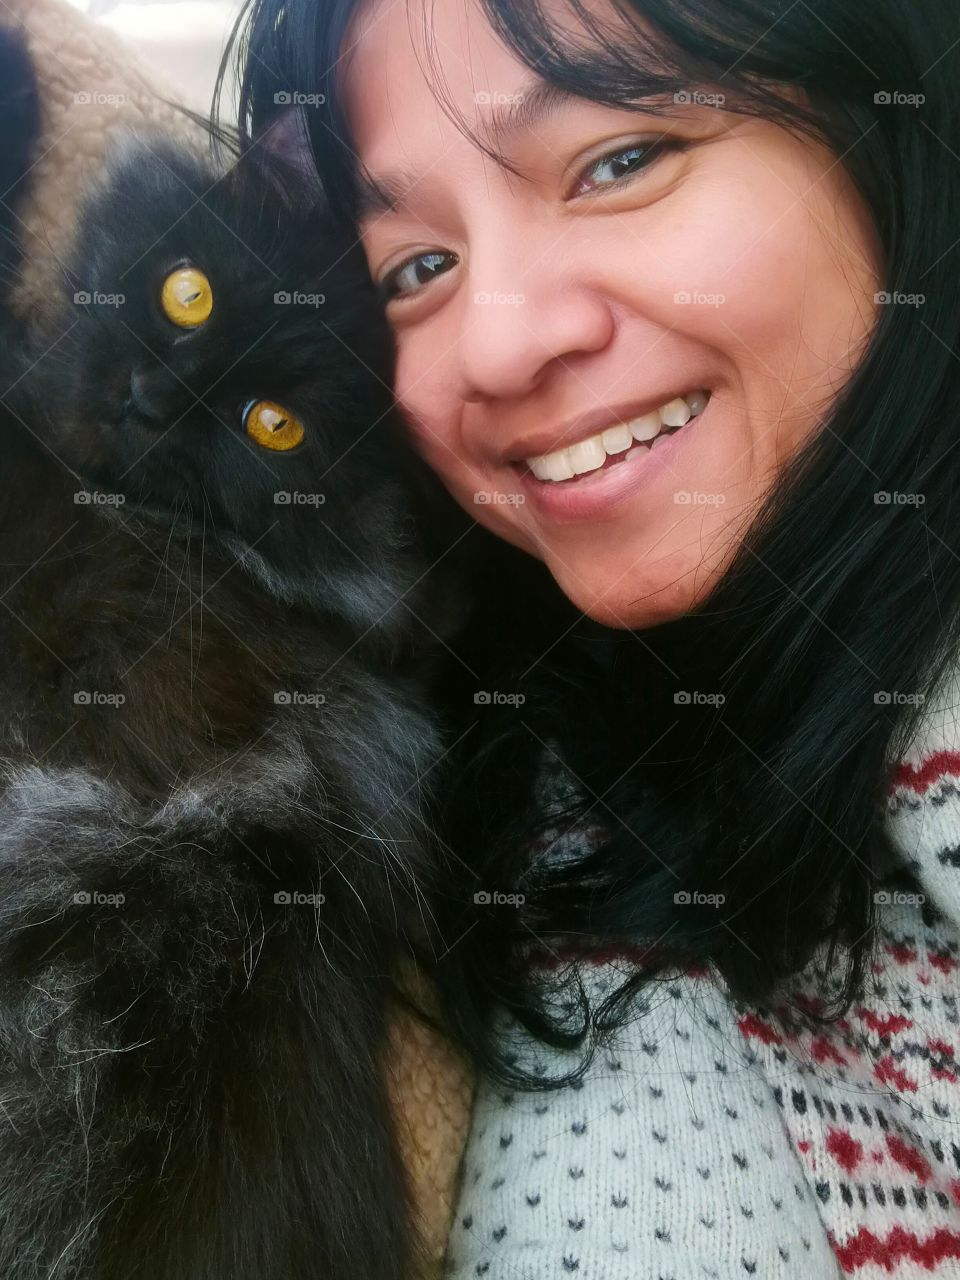 Lady selfie and is very happy with her cat. Friendship between human and cat. Concept of unconditional love and happiness.